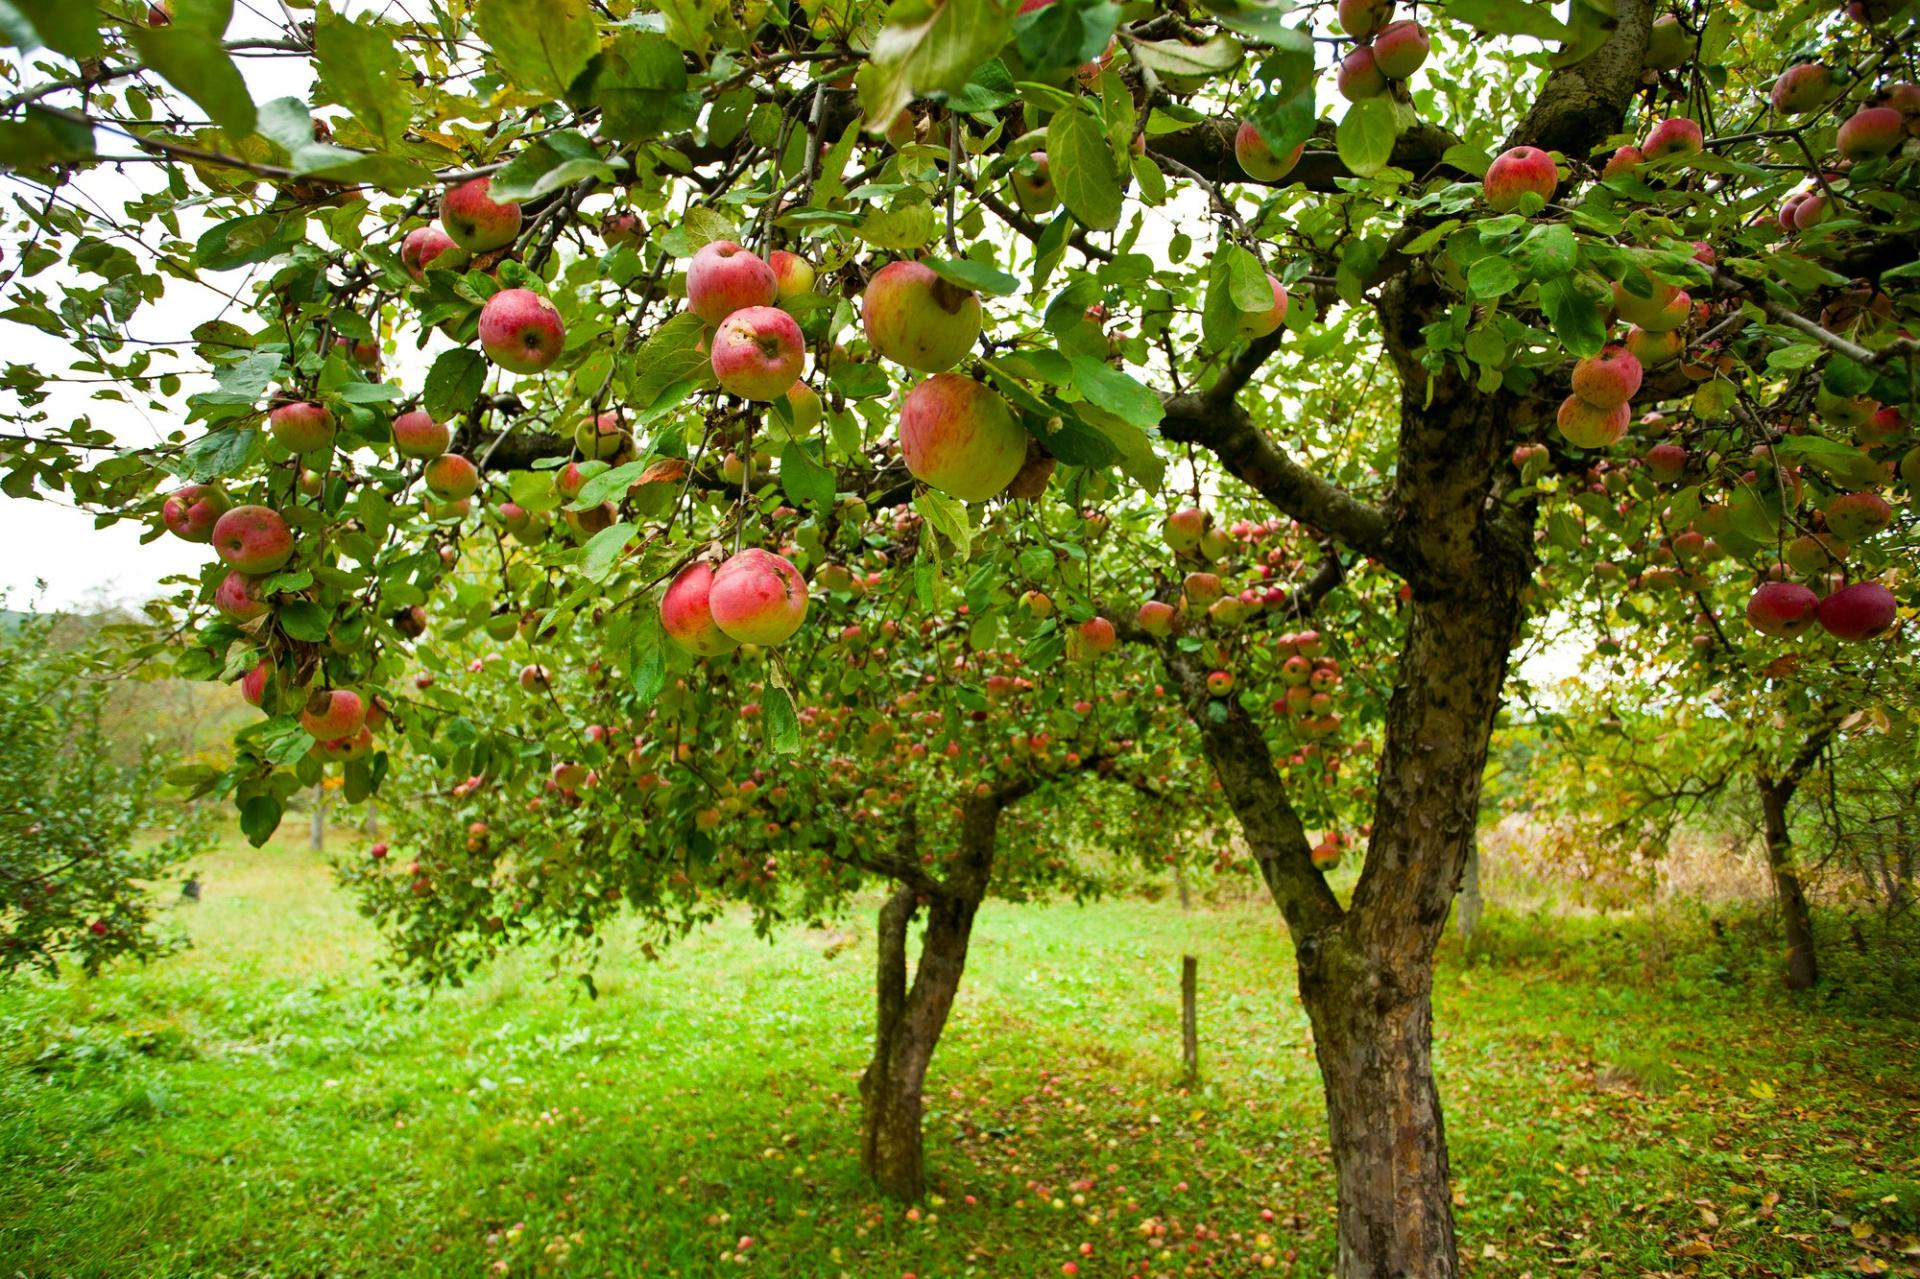 Georgia reveals volume of exported apples